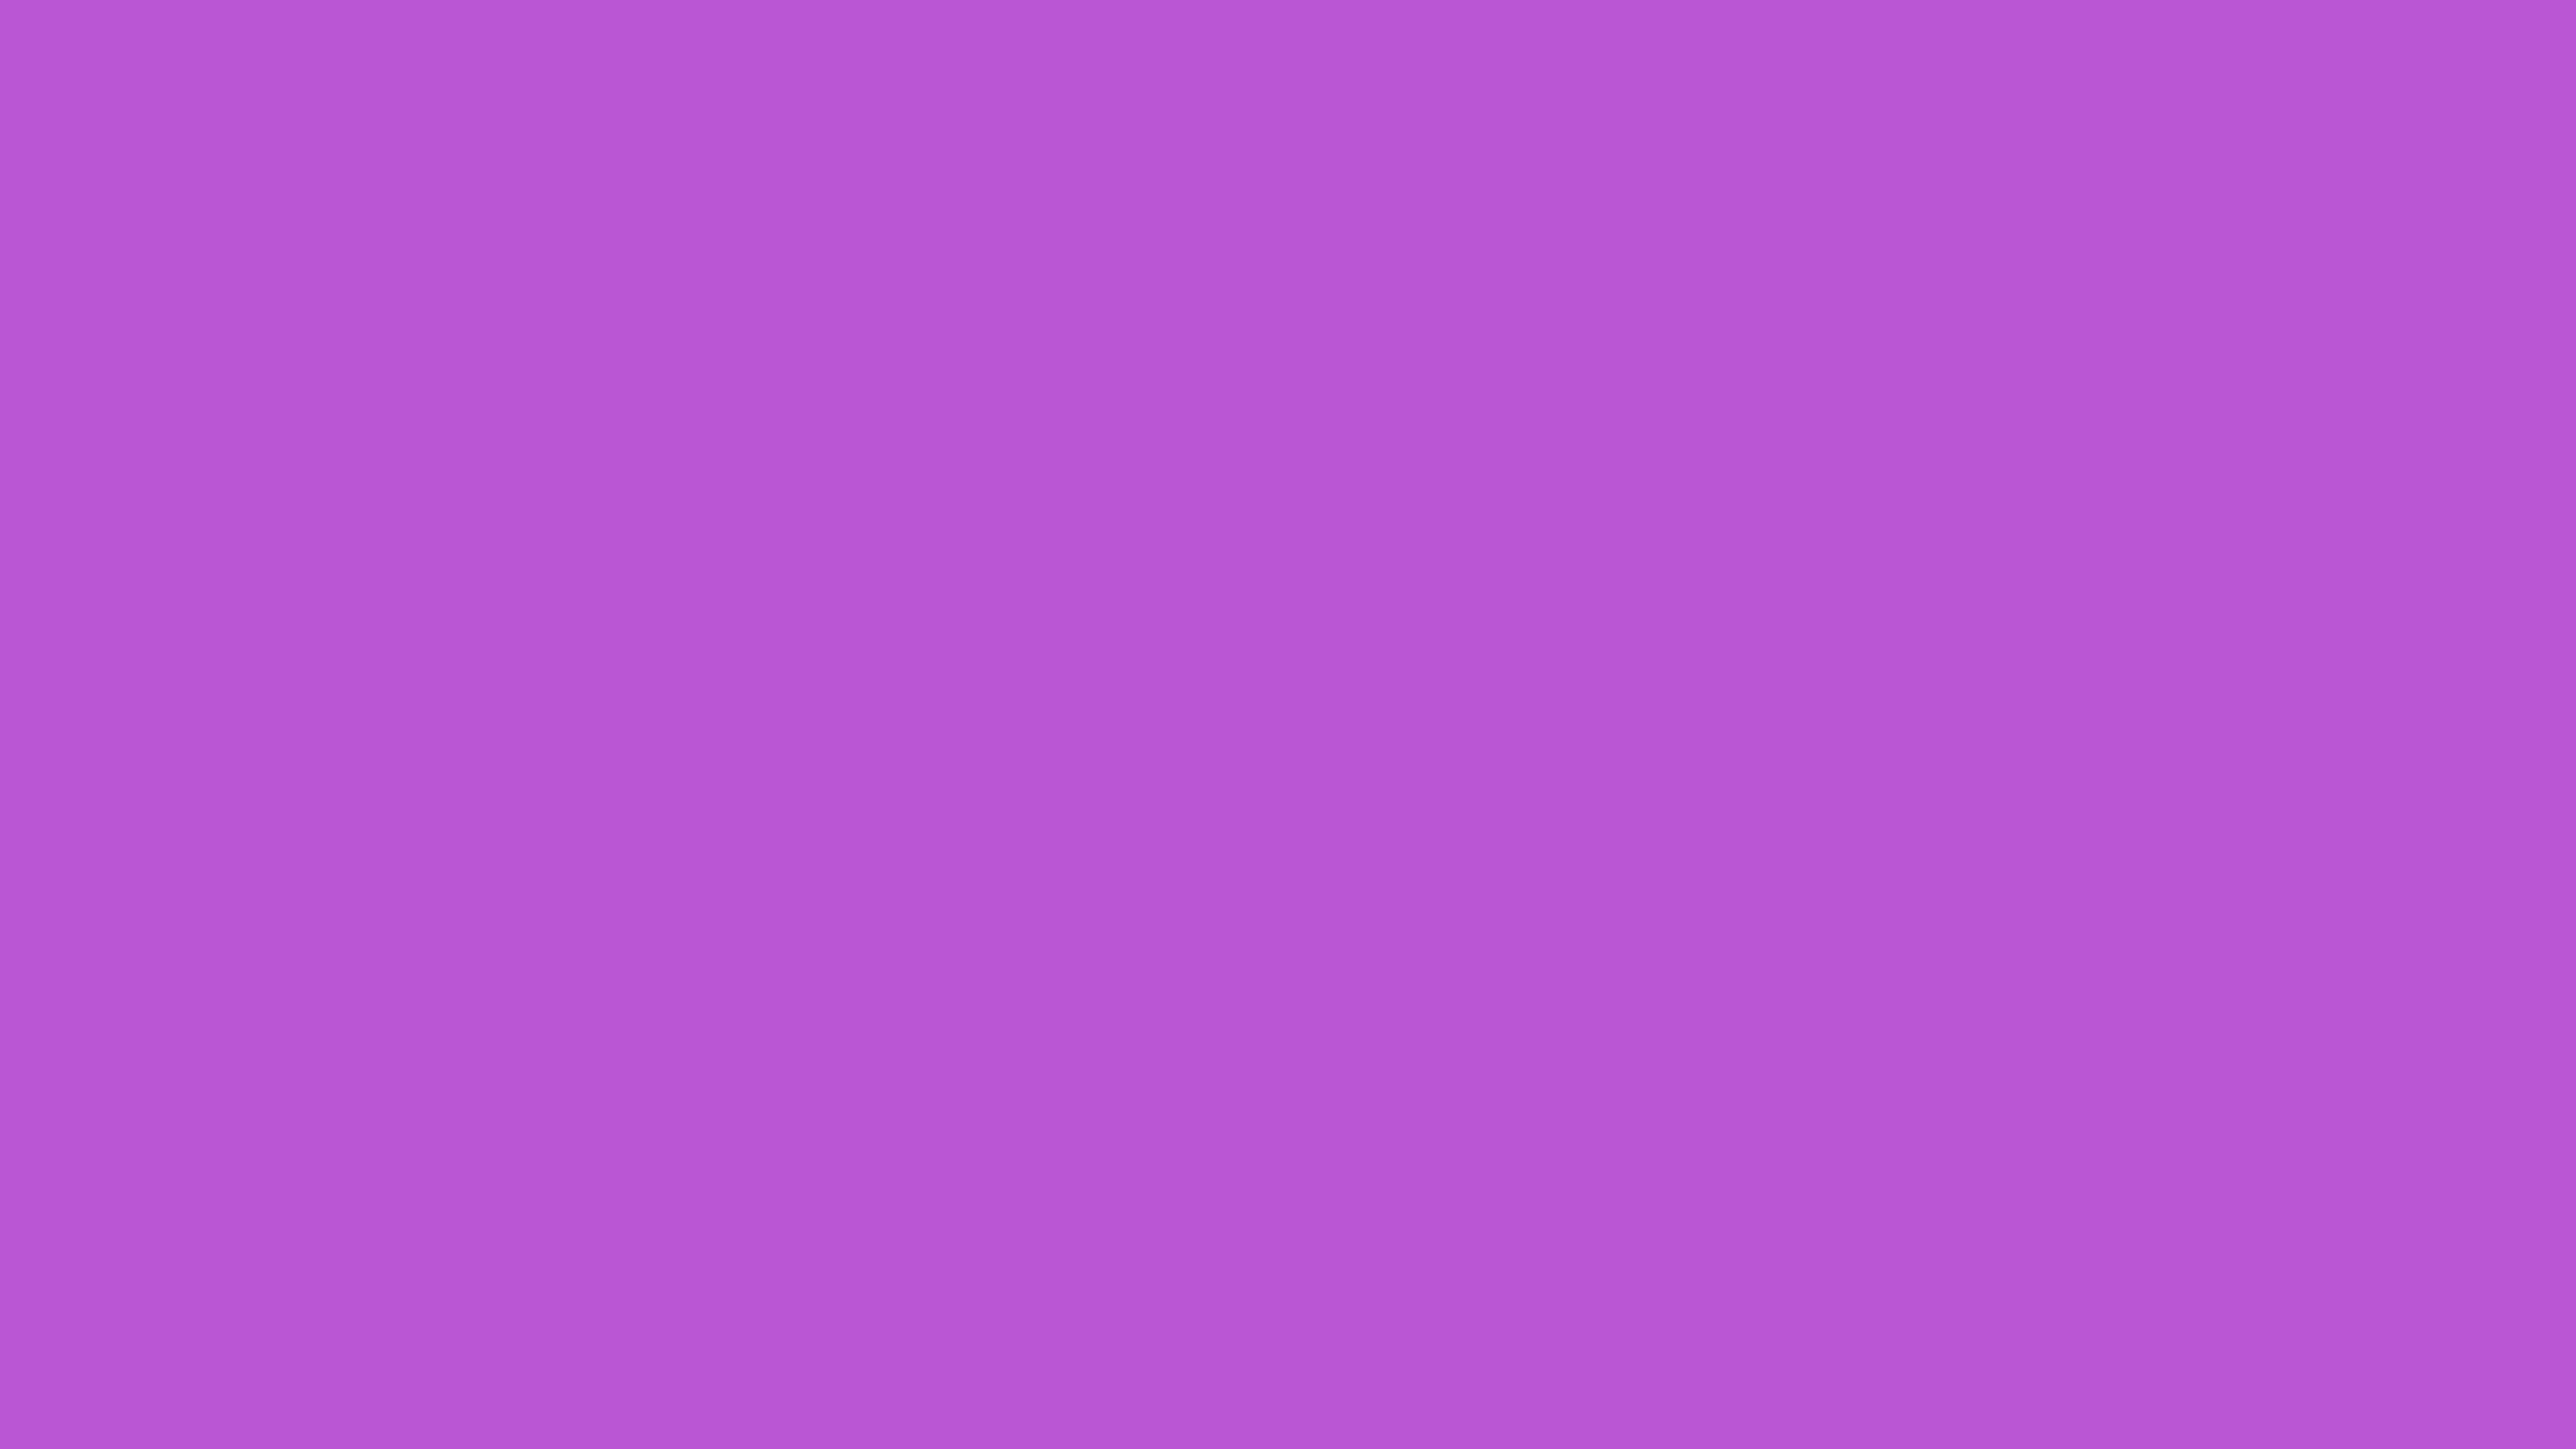 4096x2304 Medium Orchid Solid Color Background